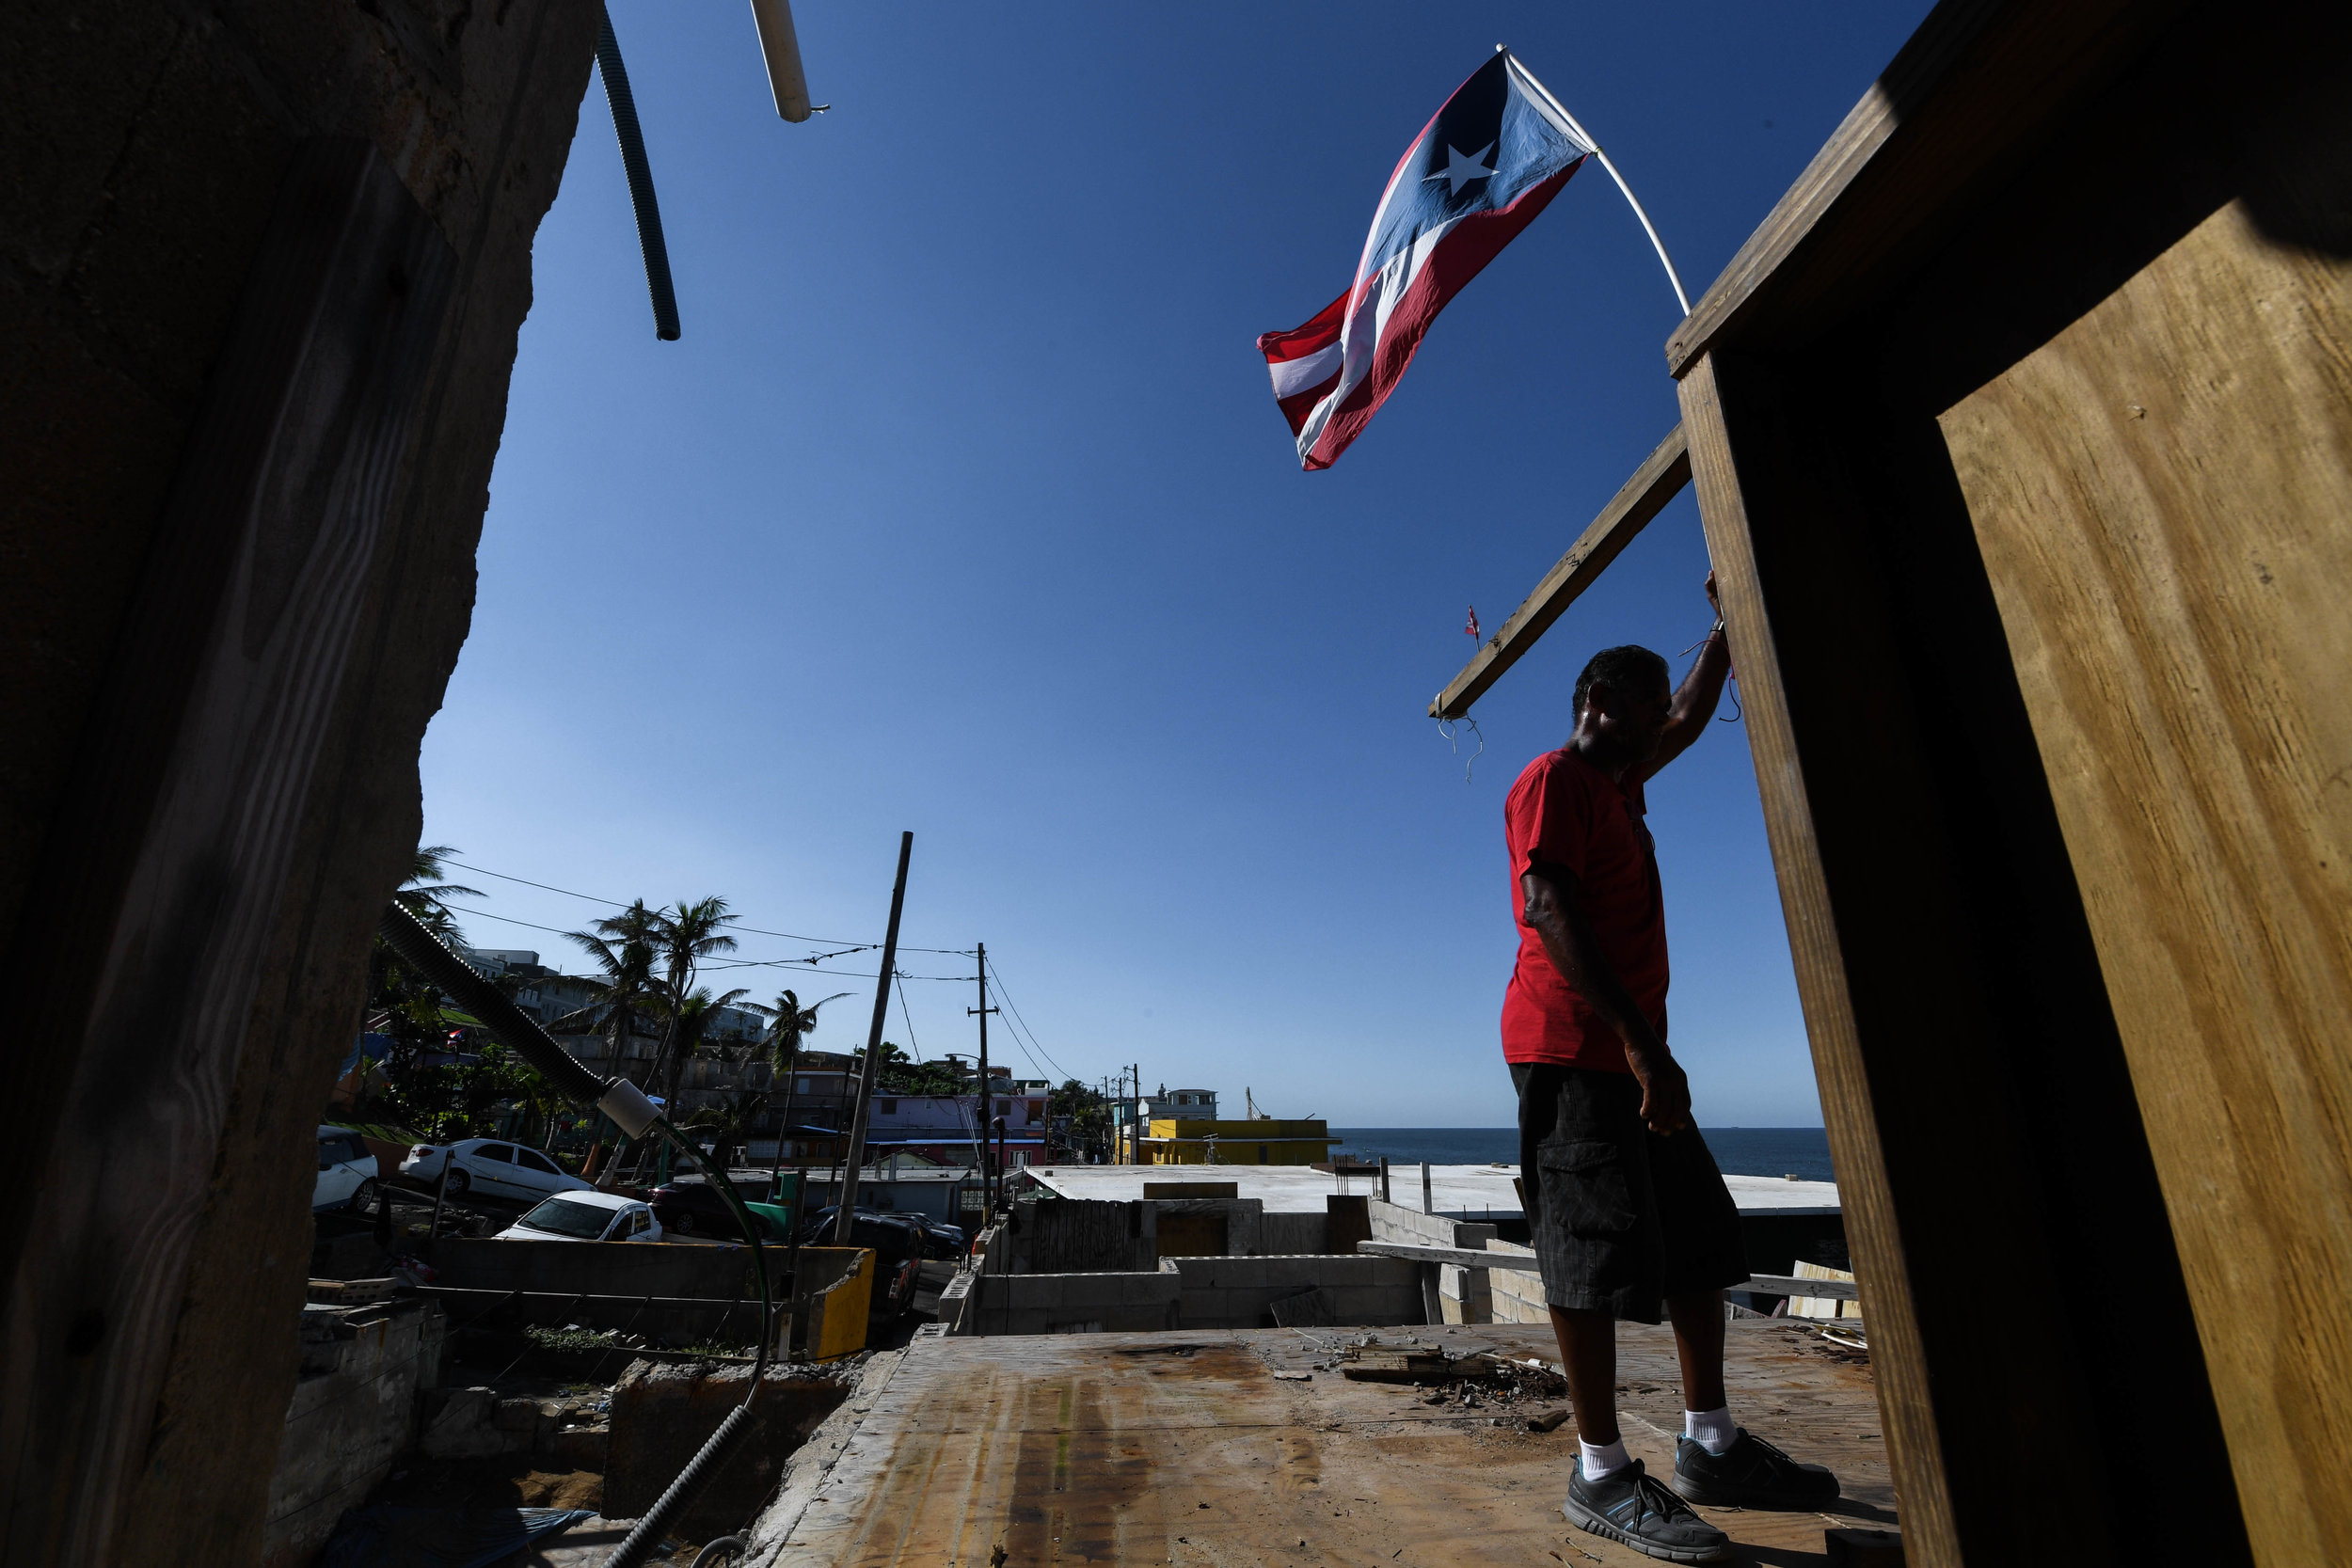 "Roberto Virbuet, 55, takes a break from rebuilding his home in La Perla, Puerto Rico. Virbuet is unsure if he can continue living in Puerto Rico after Hurricane Maria. ""This is not the Puerto Rico, the one I am living in, this does not feel like home,"" he said. Virbuet is the last of his family living in Puerto Rico. ""I just want to be with my brother in Florida,"" he said. Family is the only thing he wants after surviving the storm. ""I miss the music,"" Virbuet said. ""The music is different now. It is sad."" Over the past three months, Virbuet has delayed returning to his beach-front home in La Perla. When he returned, he feared Puerto Rico would never be the same. ""I have no thoughts,"" he said. ""I want my home back."""